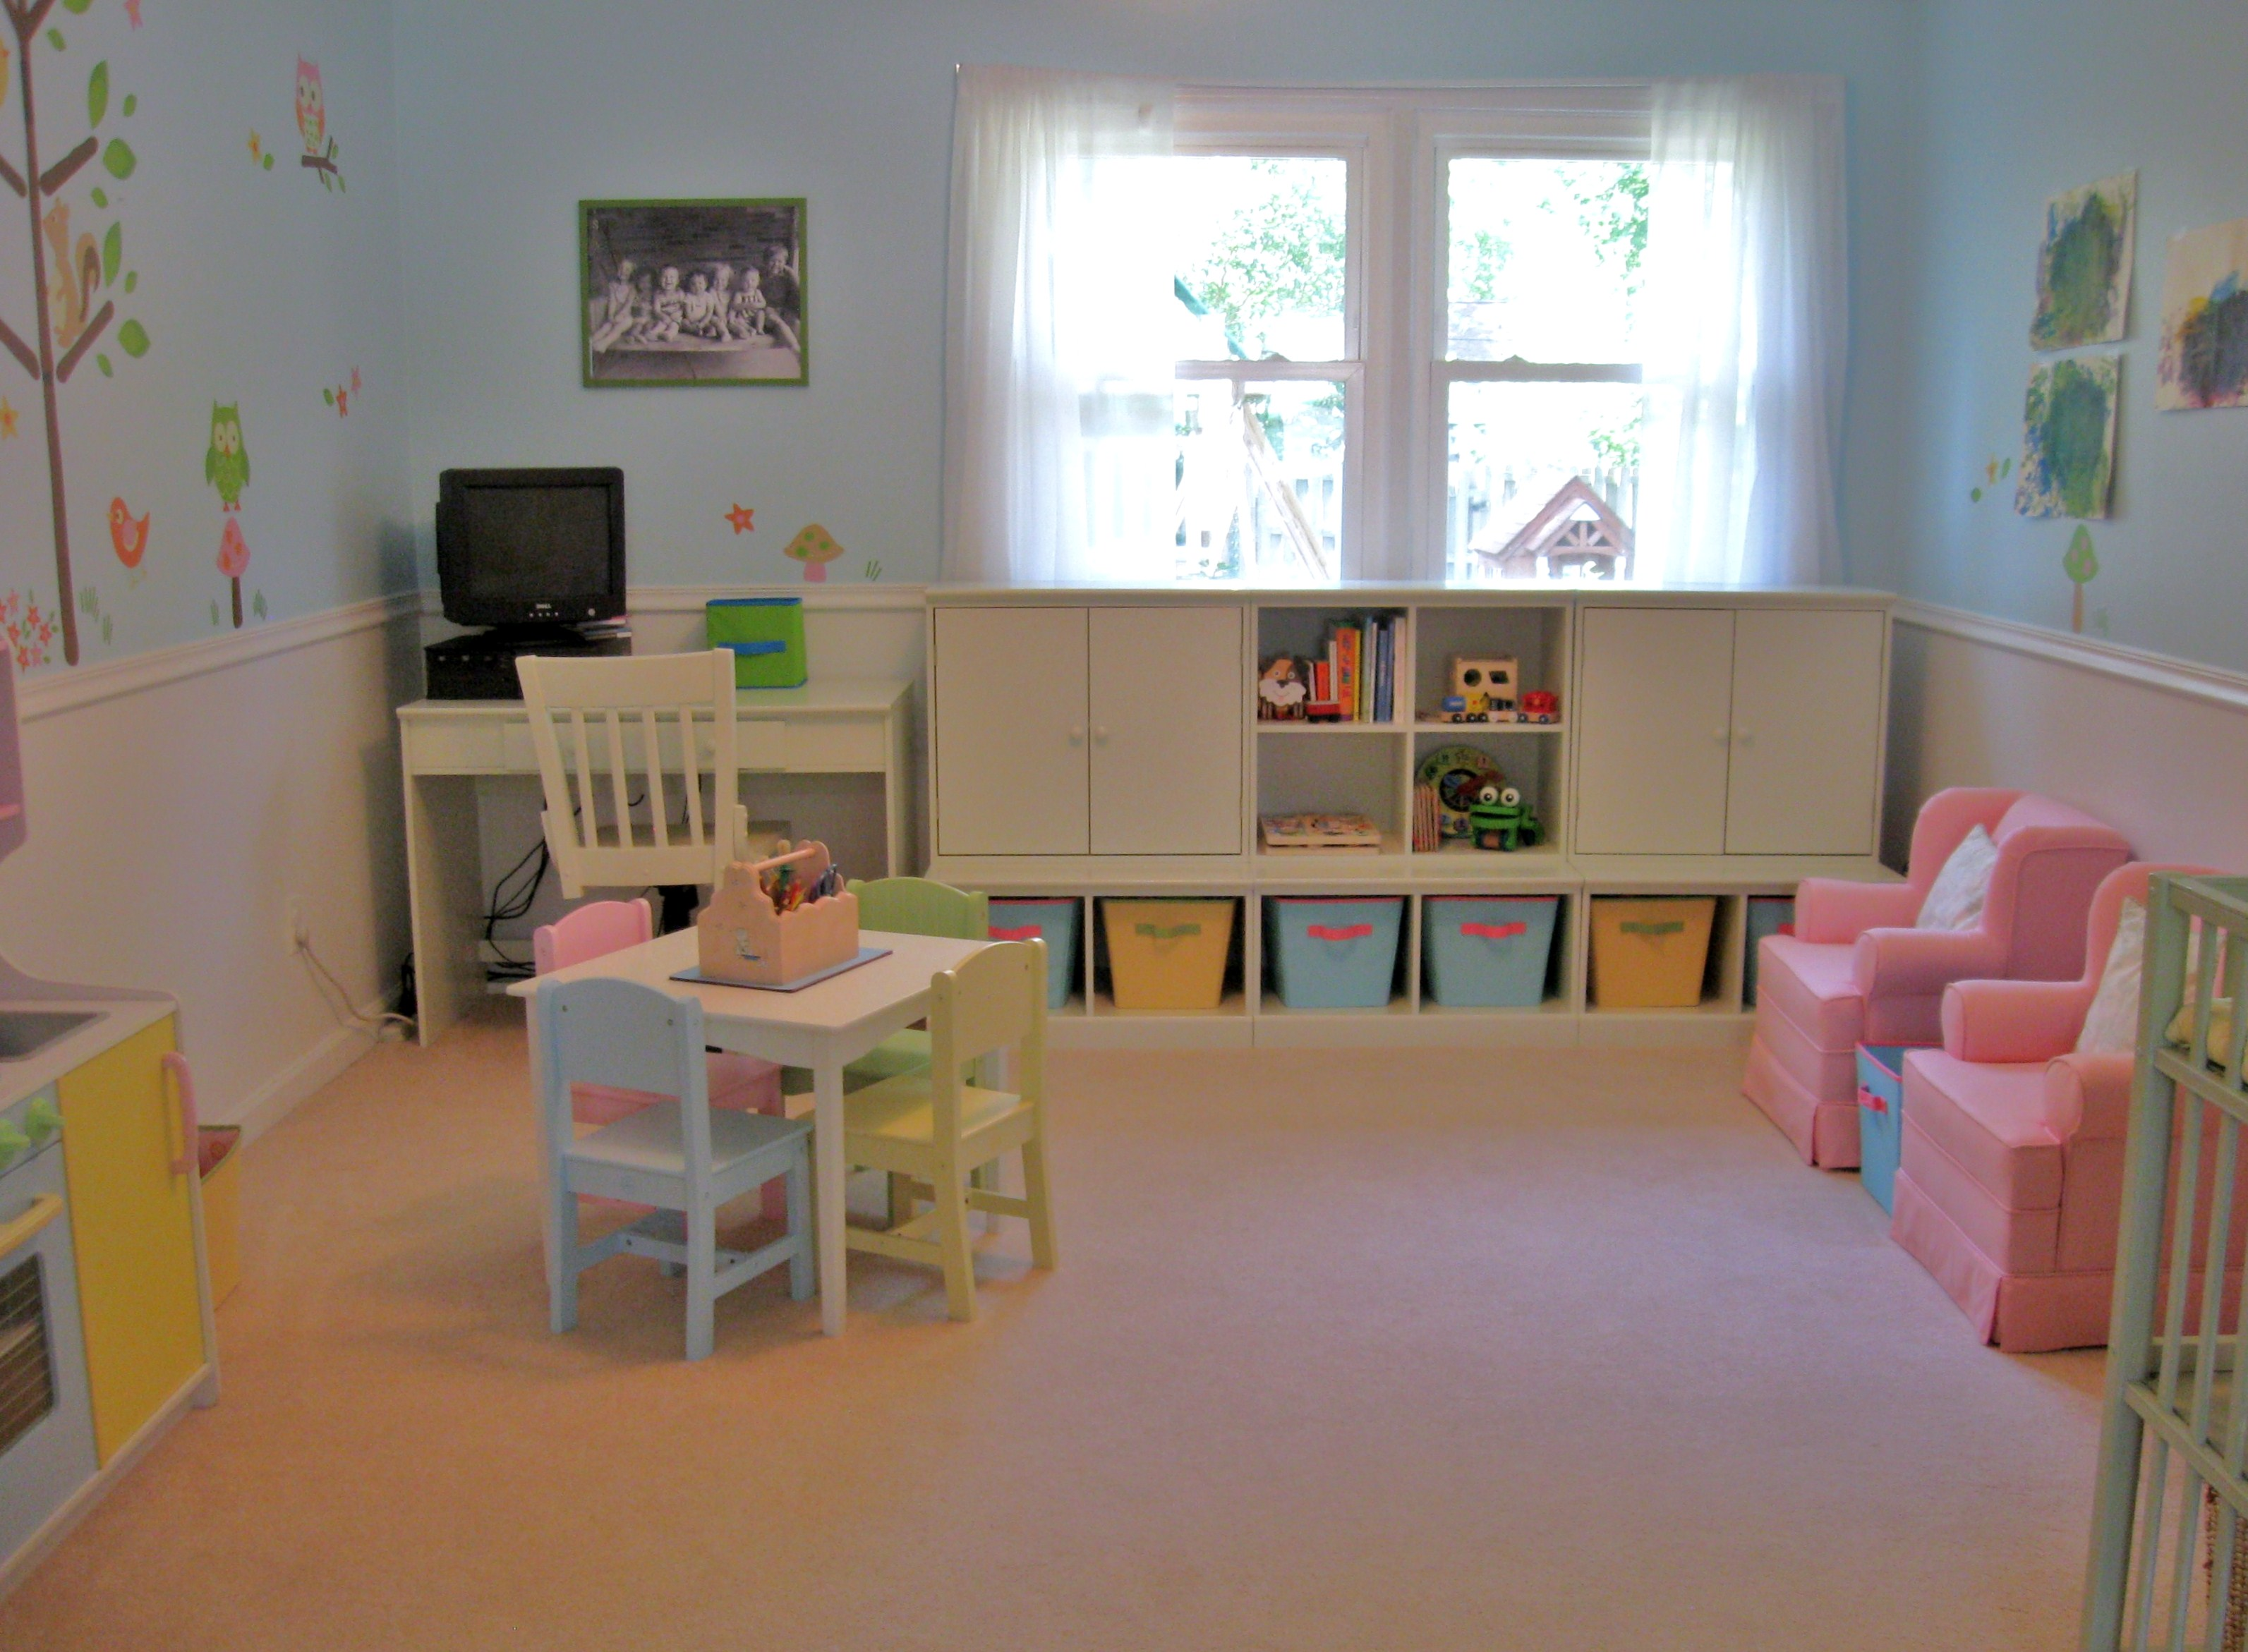 Designing the perfect playroom - takingtimeformommy.